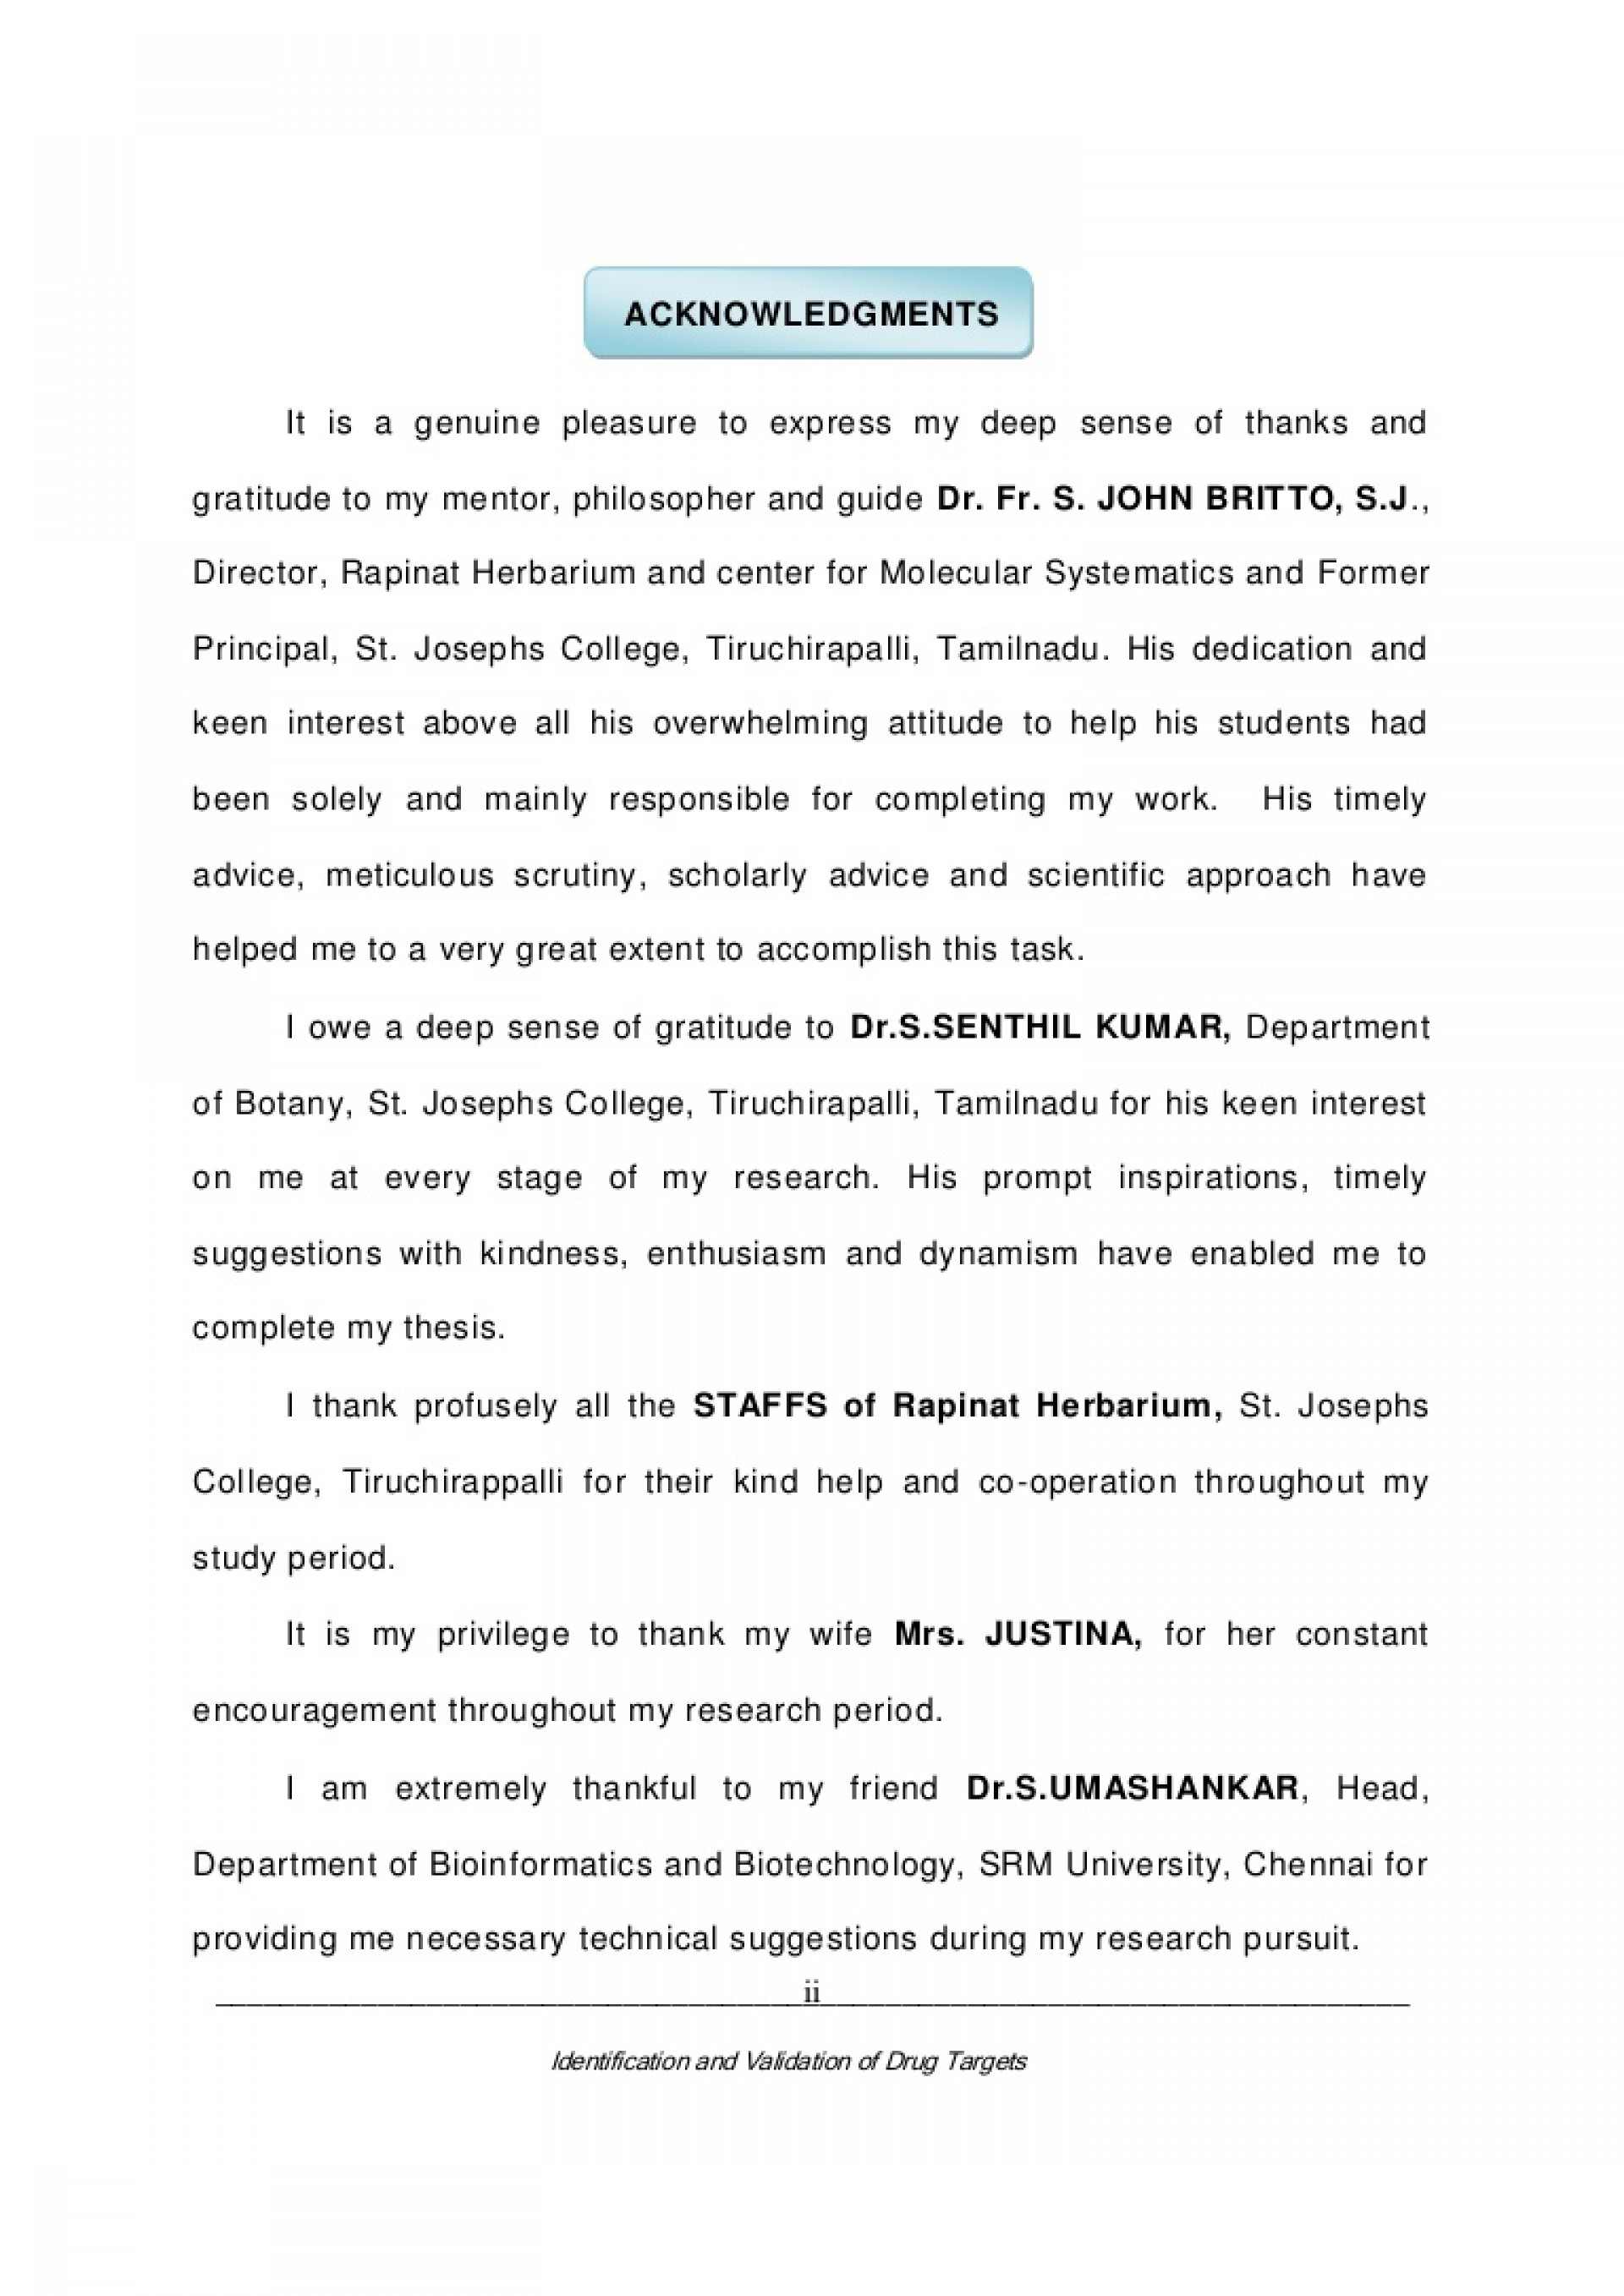 001 Acknowledgements Phpapp02 Thumbnail Research Paper Acknowledgement For Unbelievable Students 1920